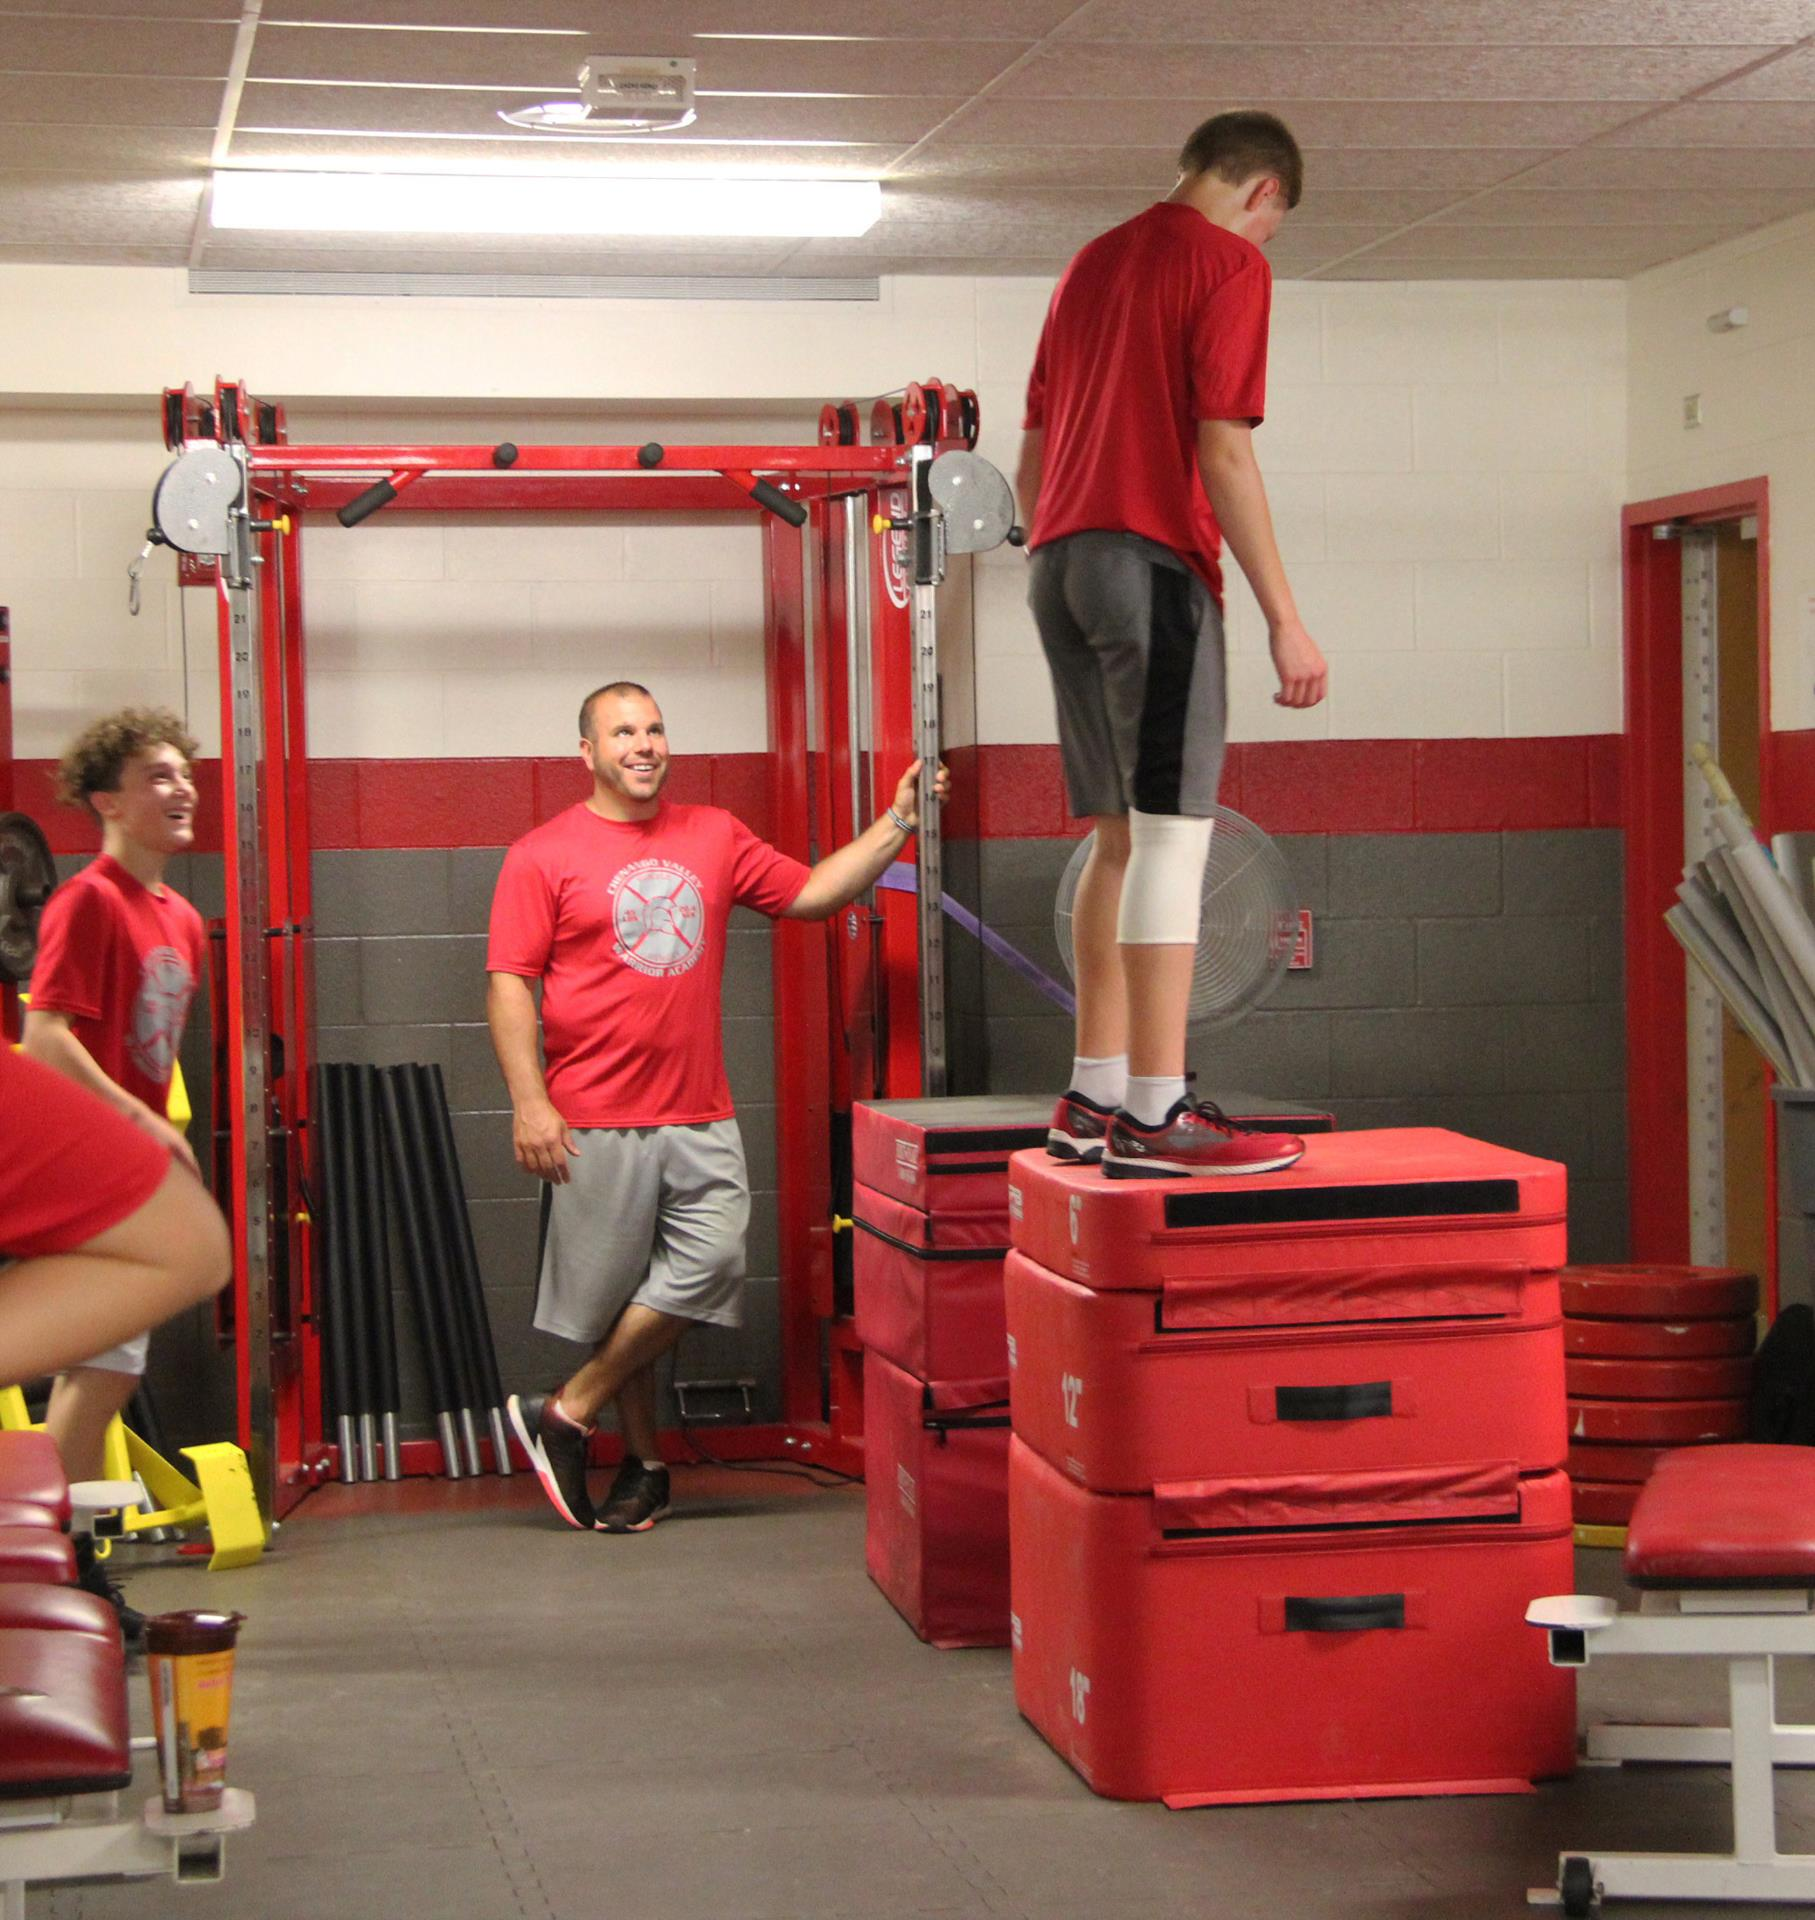 student doing box jump exercise